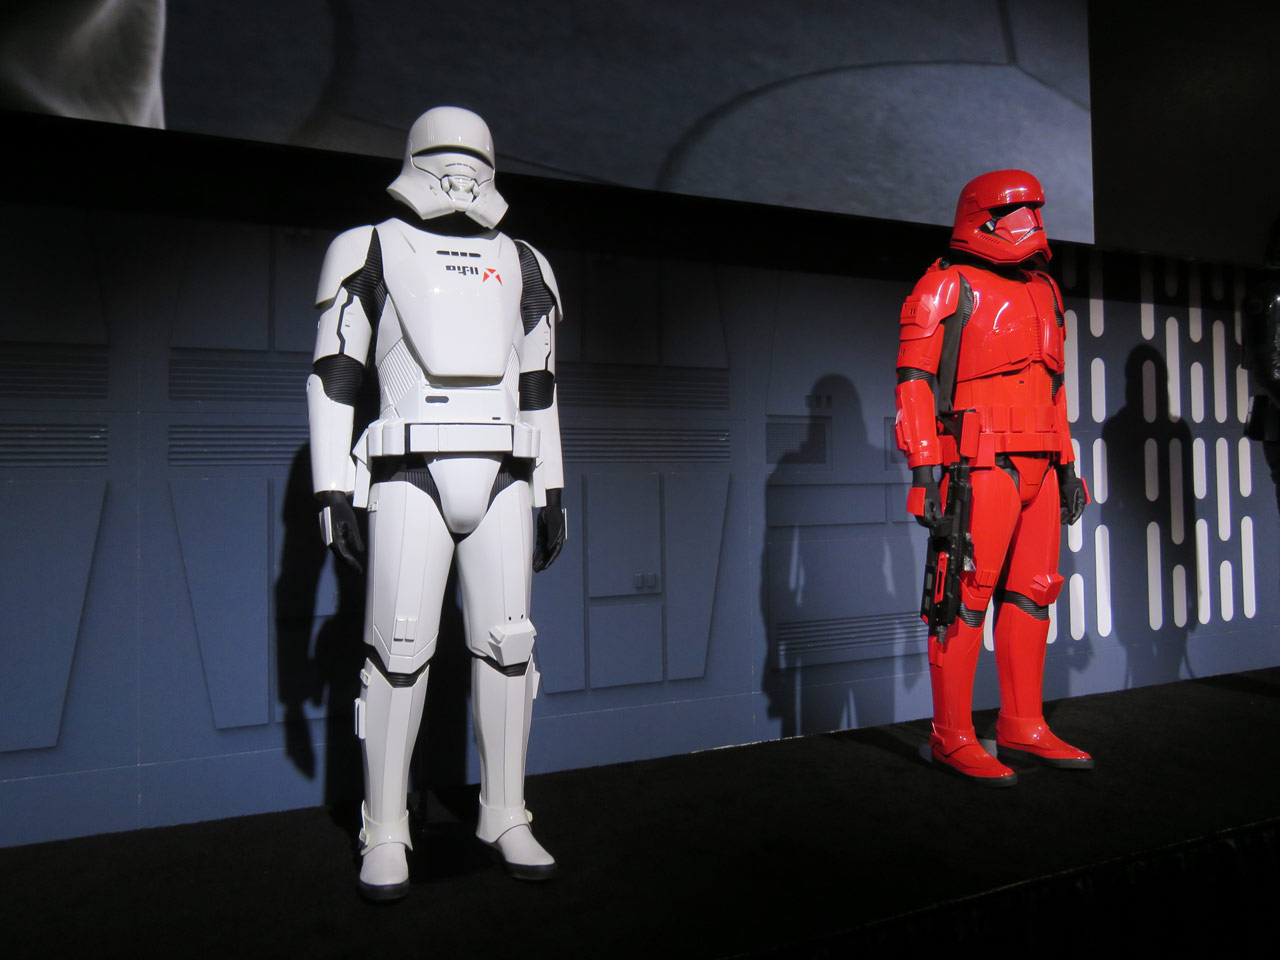 A new jet trooper and Sith trooper from Star Wars: The Rise of Skywalker.